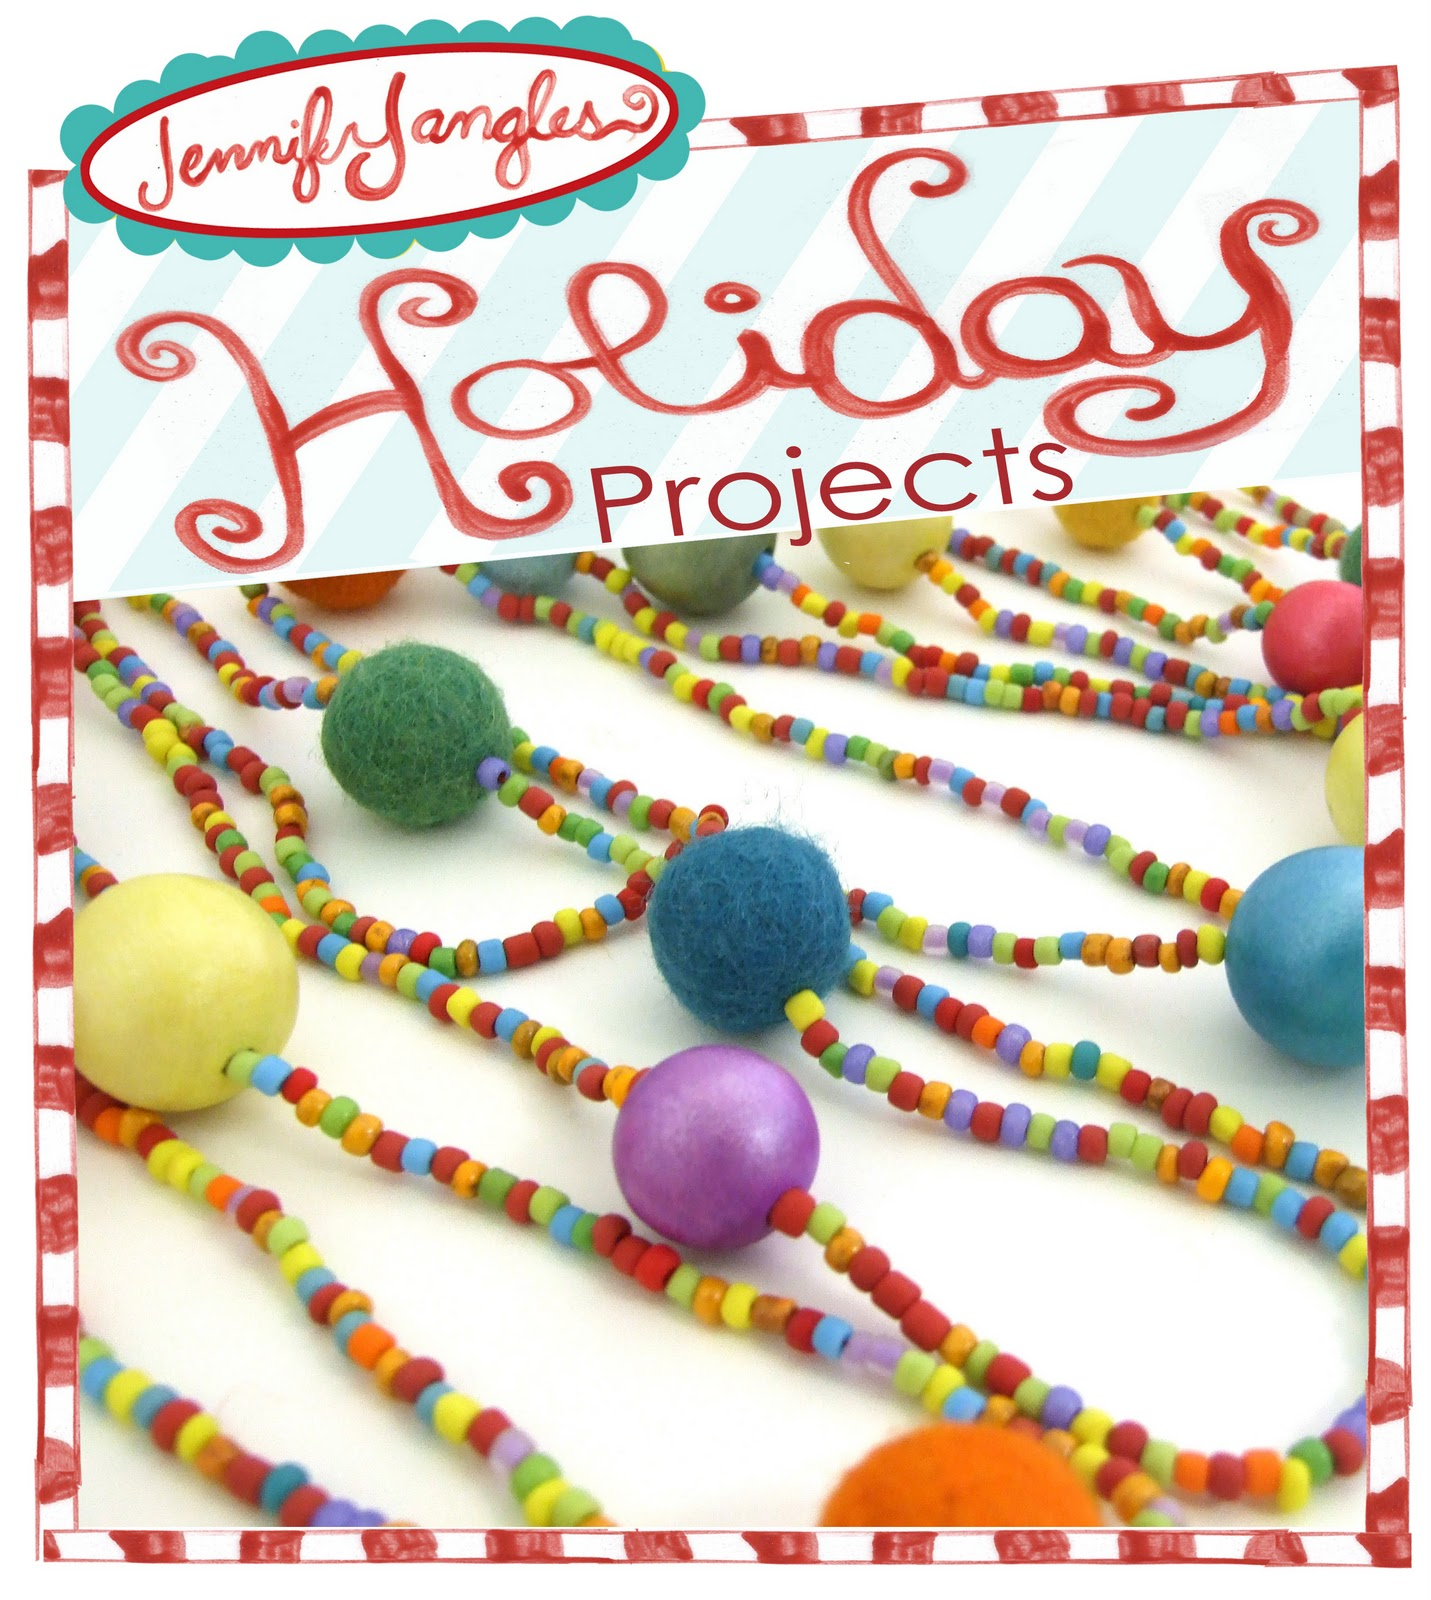 holiday project 6 bead garland jennifer jangles ForHoliday Project